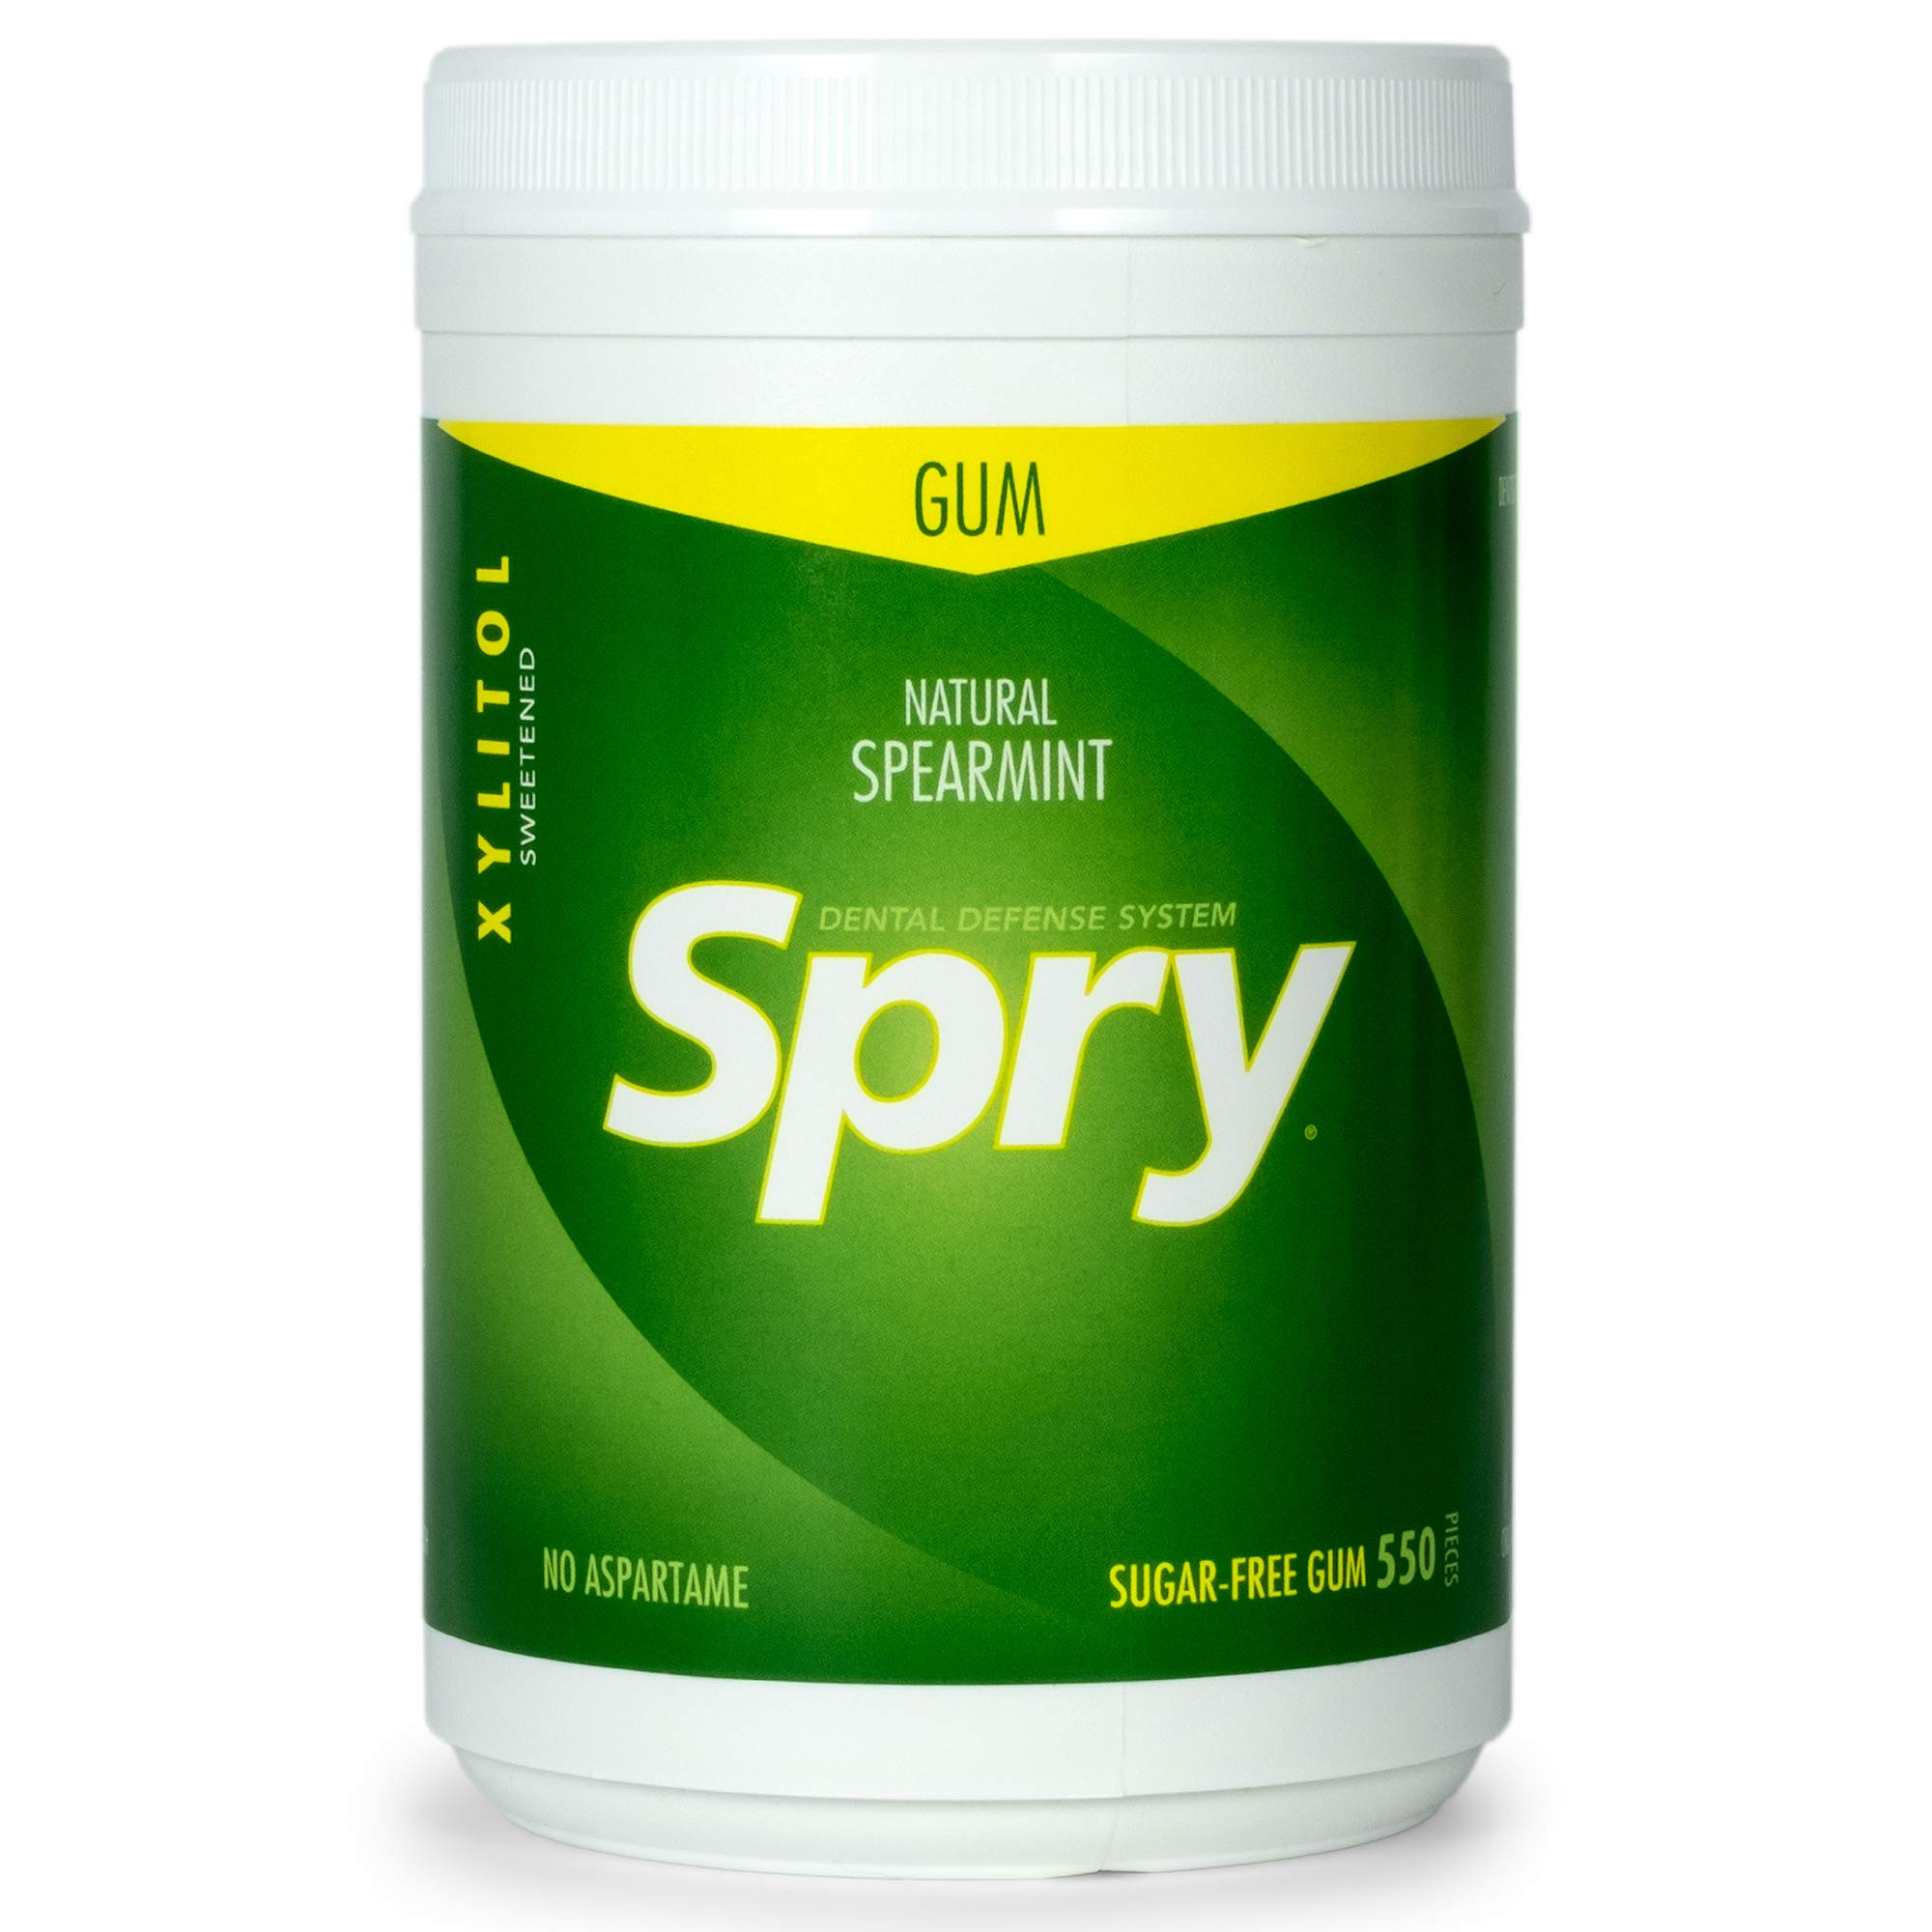 Spry Fresh Natural Spearmint Gum, Natural Xylitol Chewing Gum, 550 count by Spry